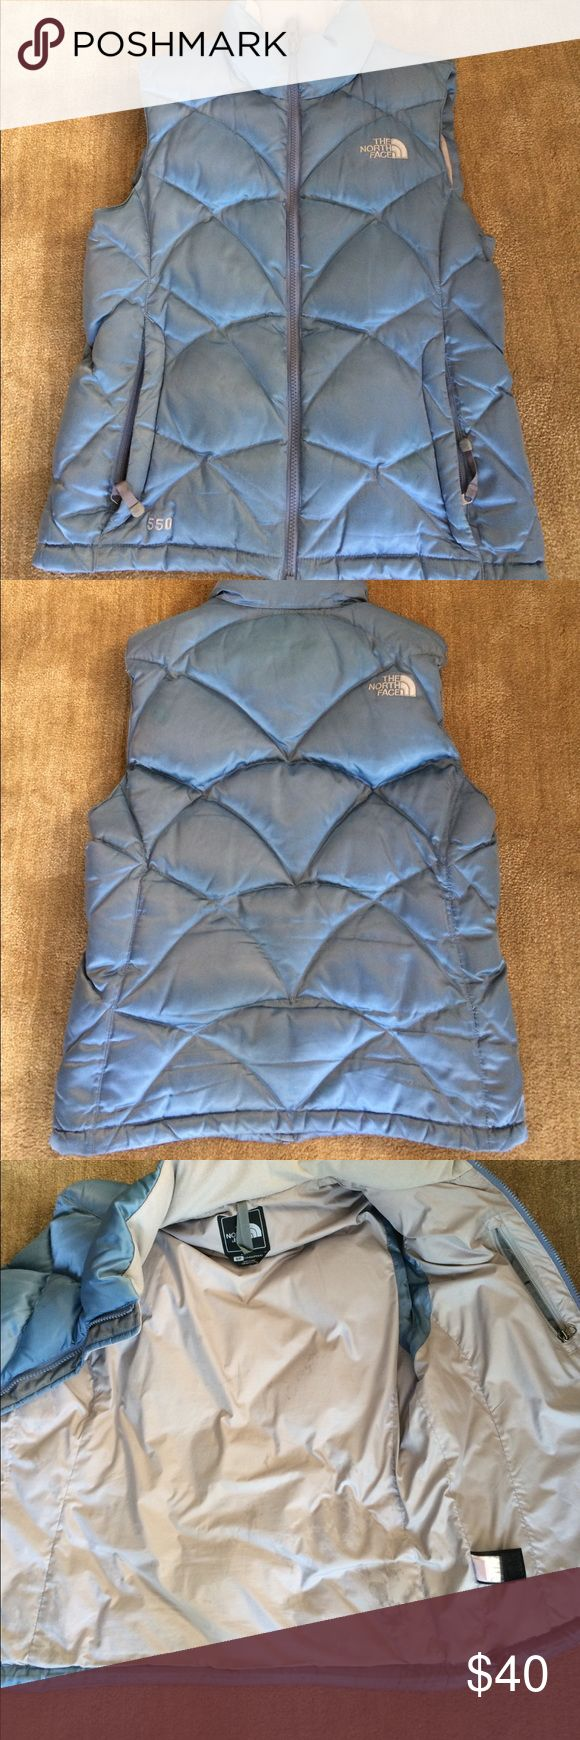 North Face Down Vest 550 Down Fill - Good Condition. Signs of Wear on the inside of the vest. North Face Jackets & Coats Vests